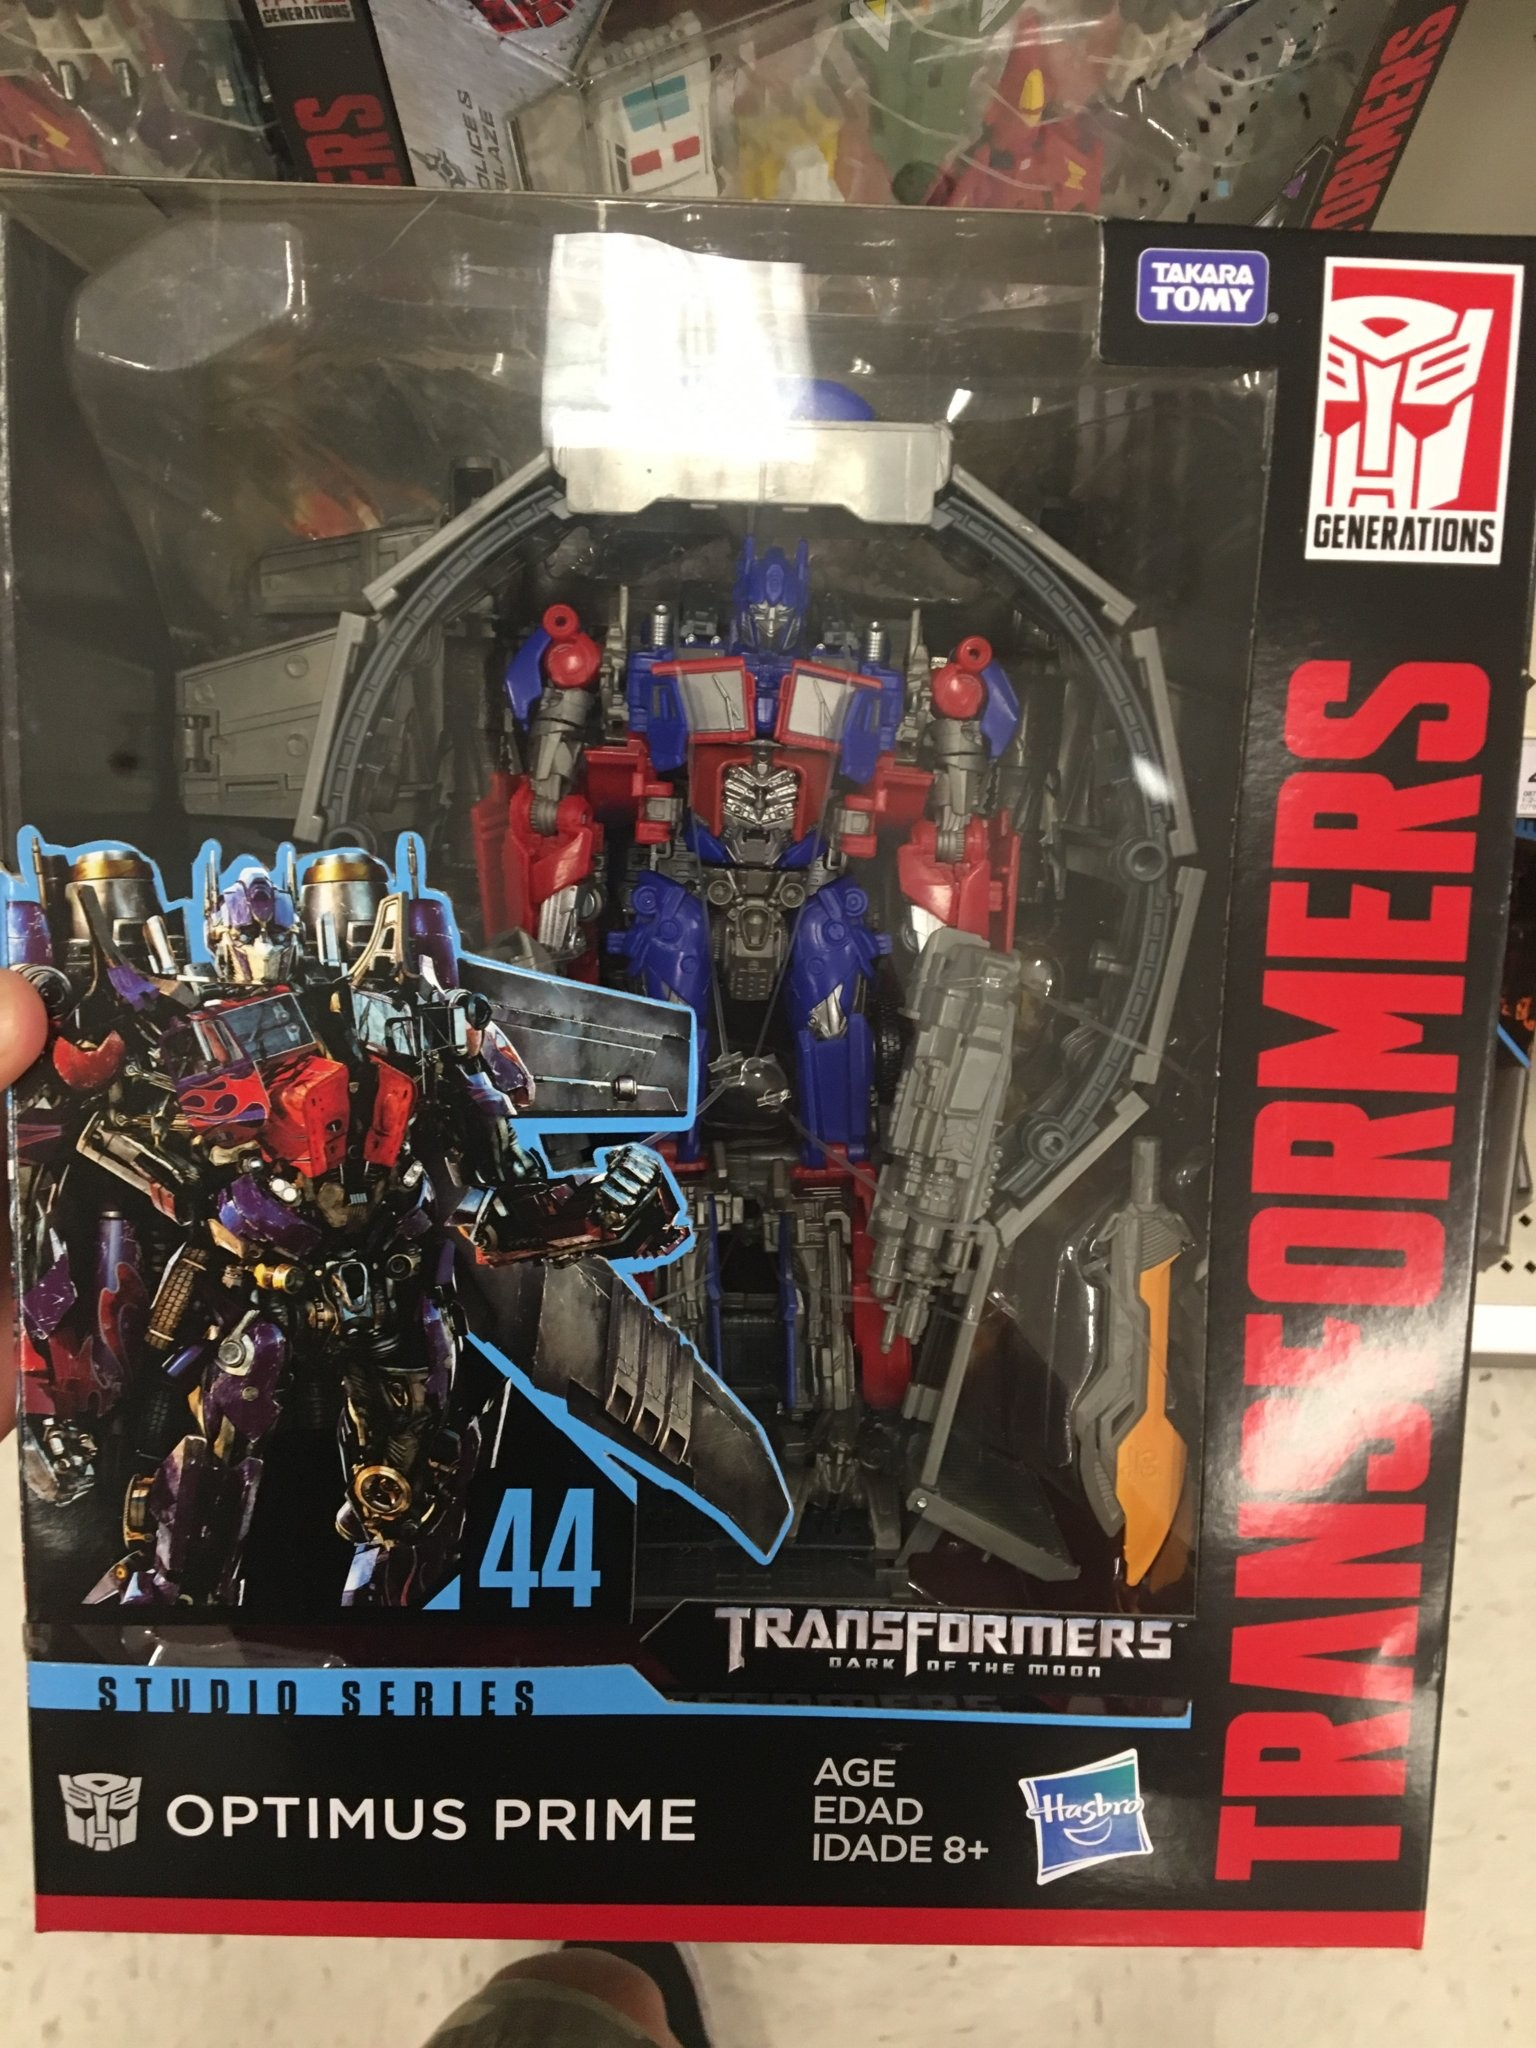 Transformers News: Studio Series Wave Leader Jetwing Optimus Prime Found at US Retail